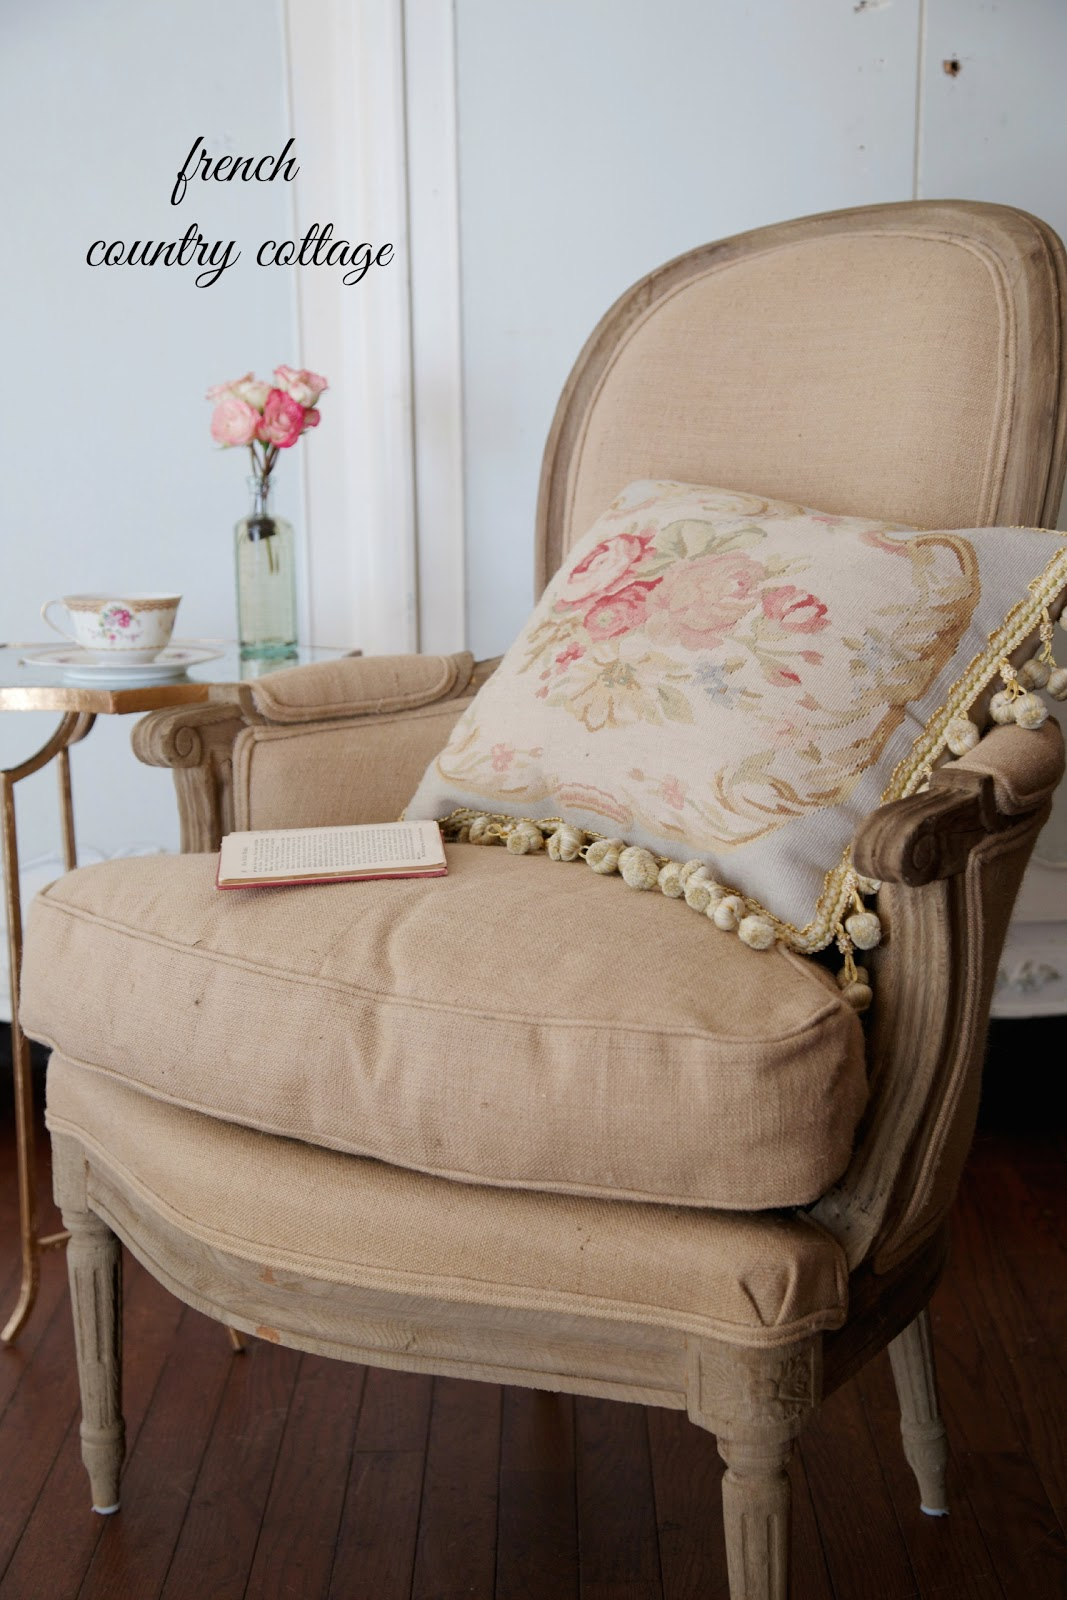 & A new French chair - FRENCH COUNTRY COTTAGE